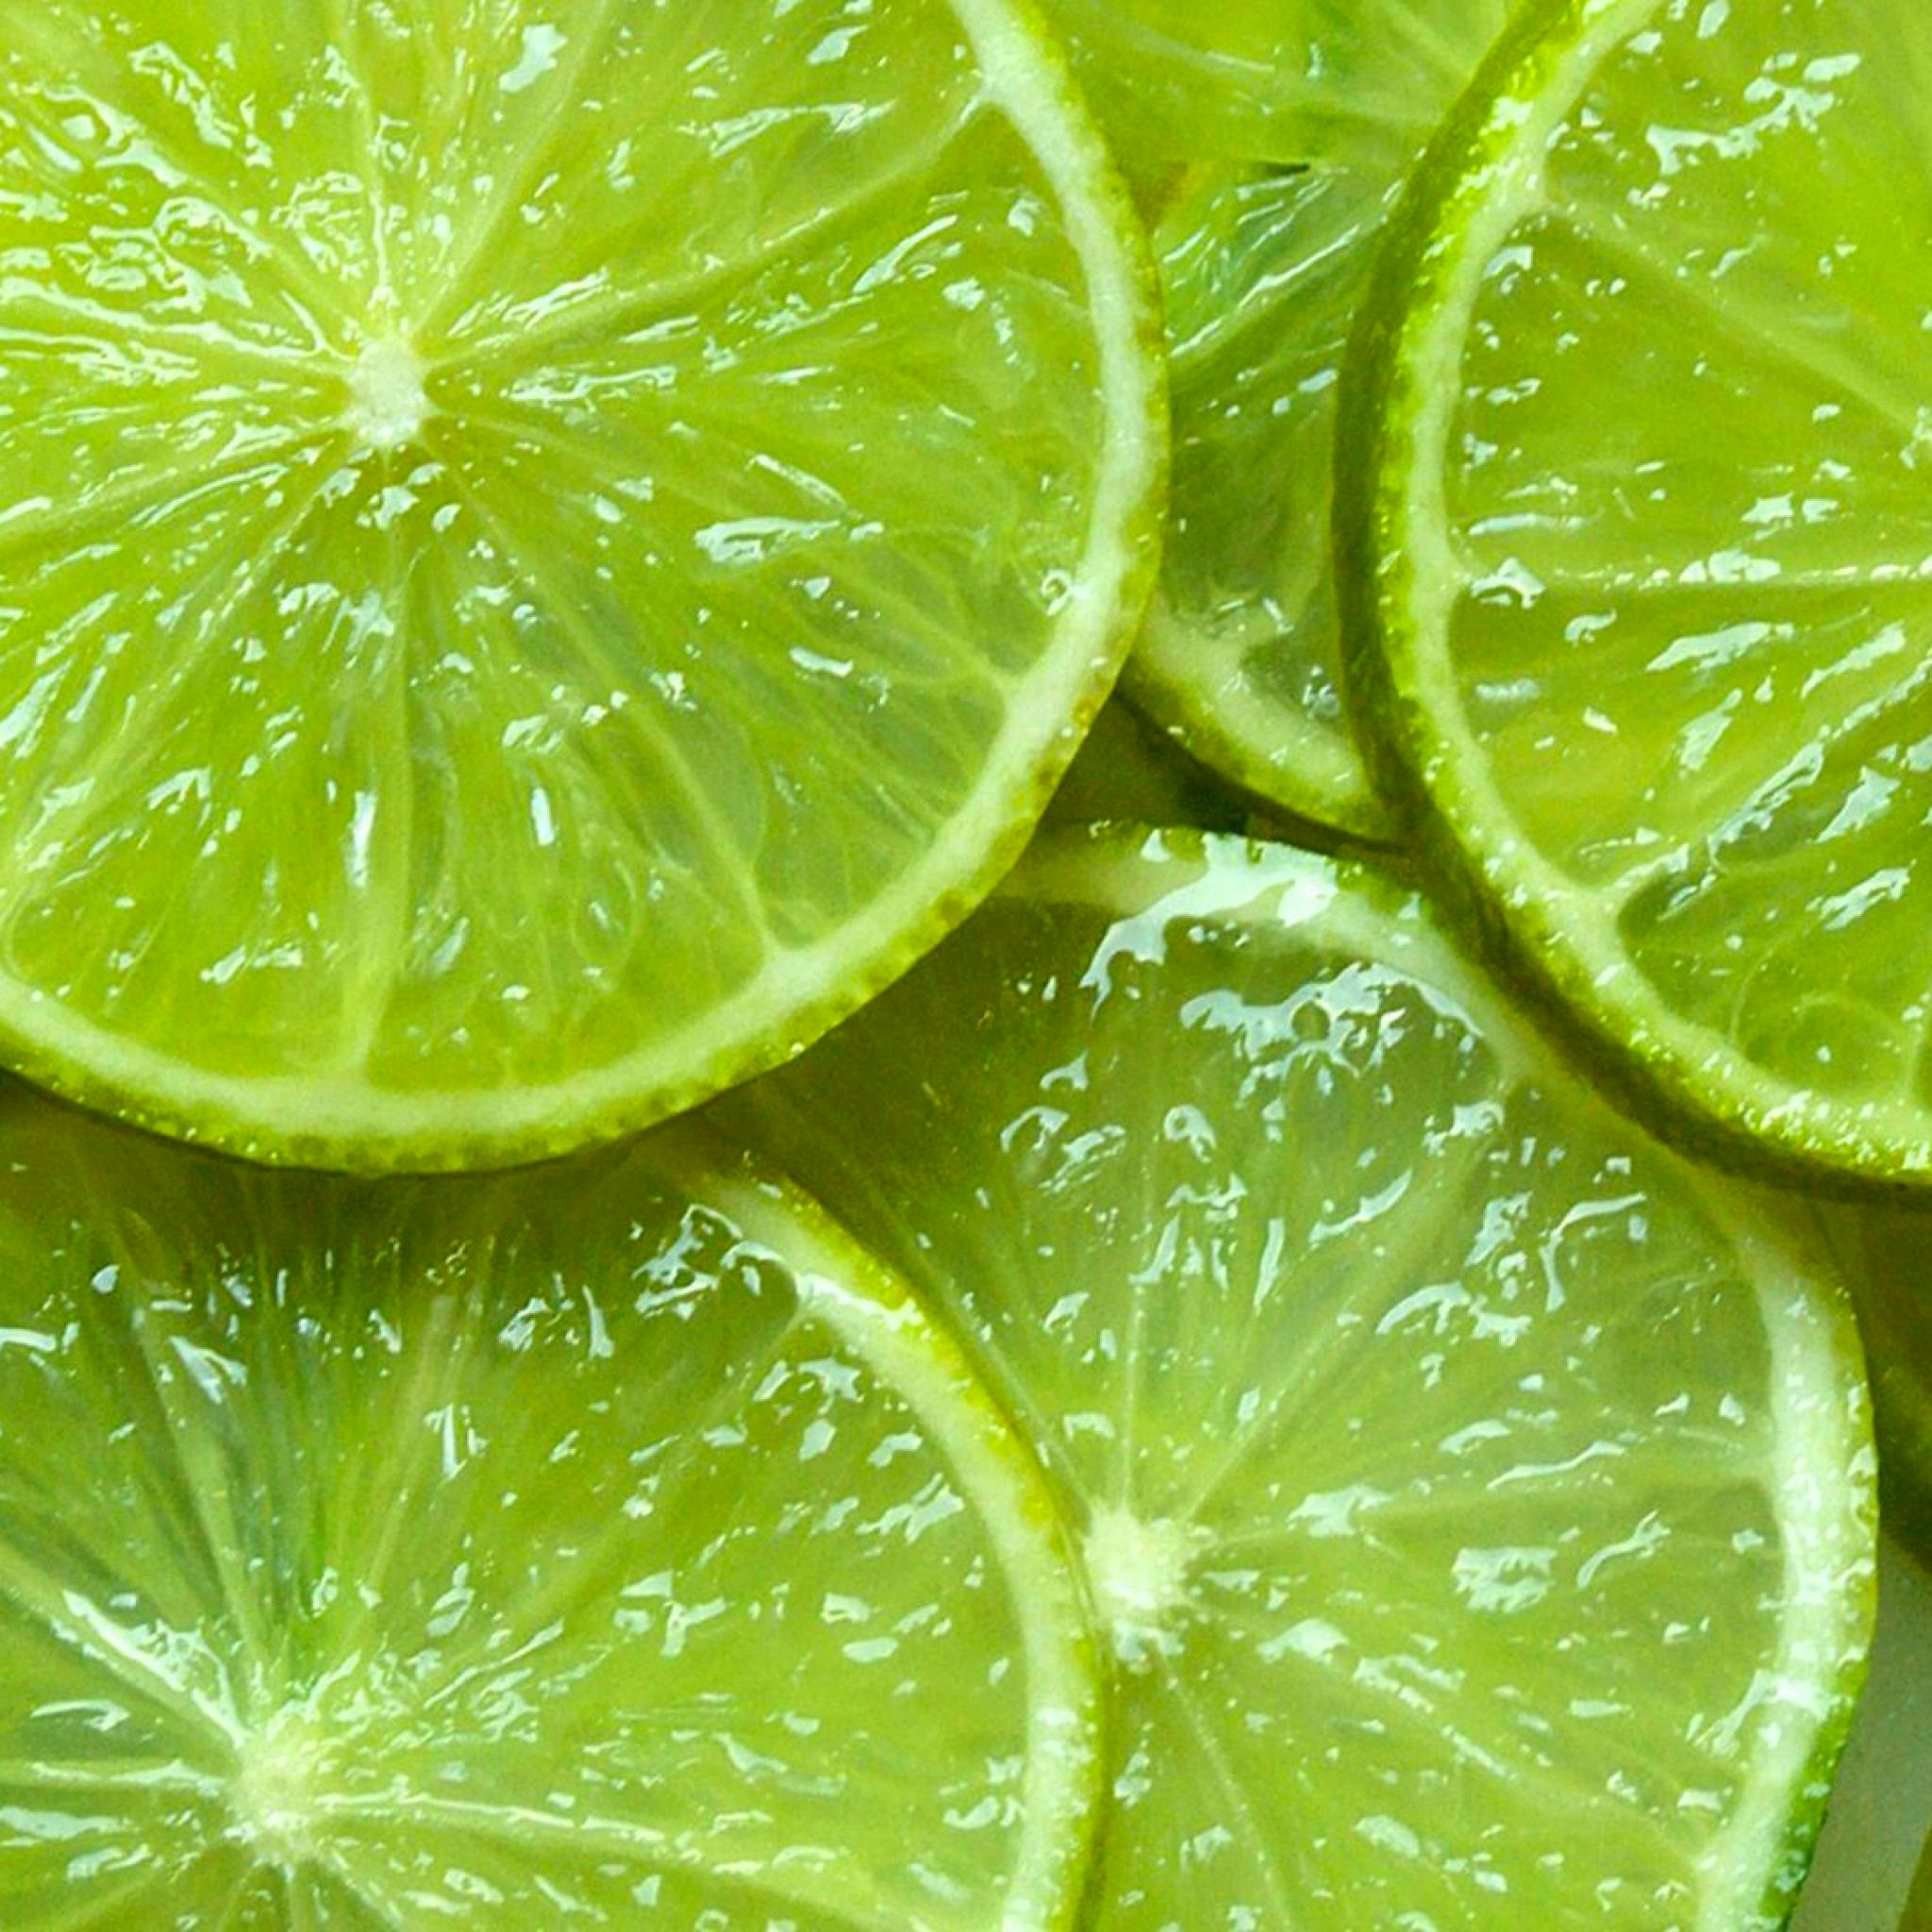 Green-Limes-3Wallpapers-iPad-Retina